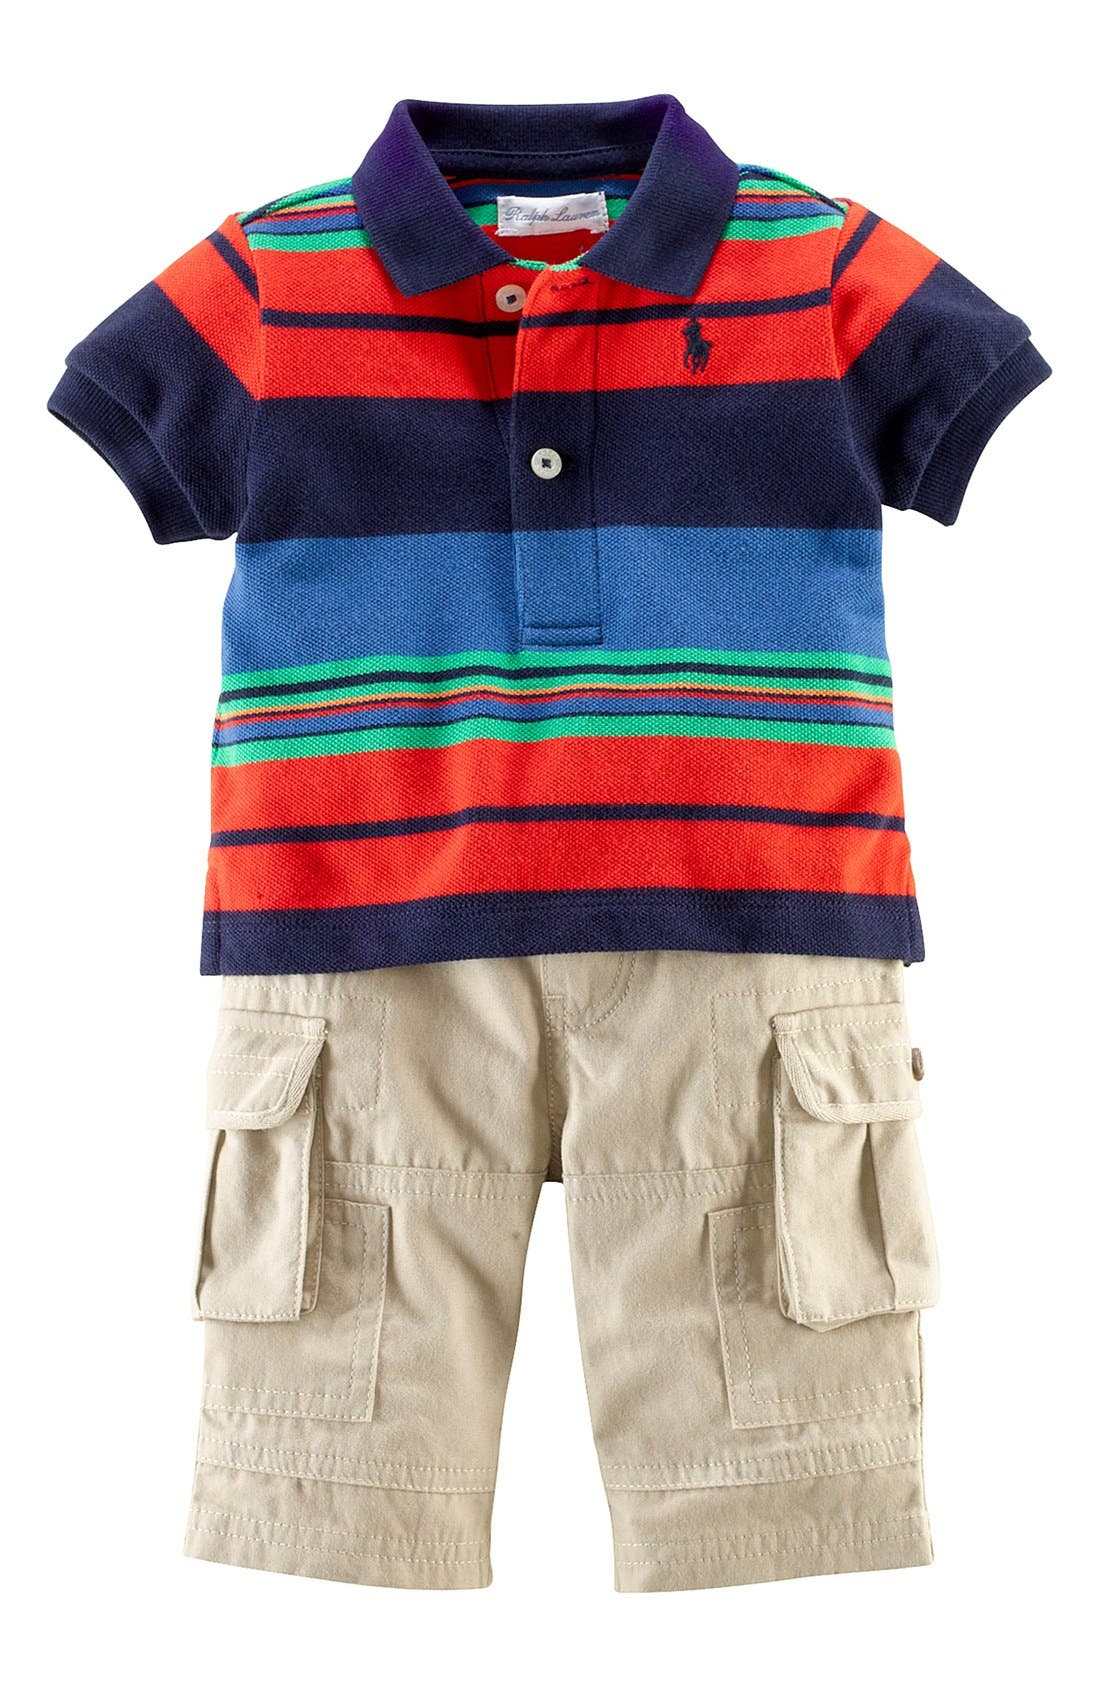 Alternate Image 1 Selected - Ralph Lauren Polo & Cargo Pants (Baby Boys)